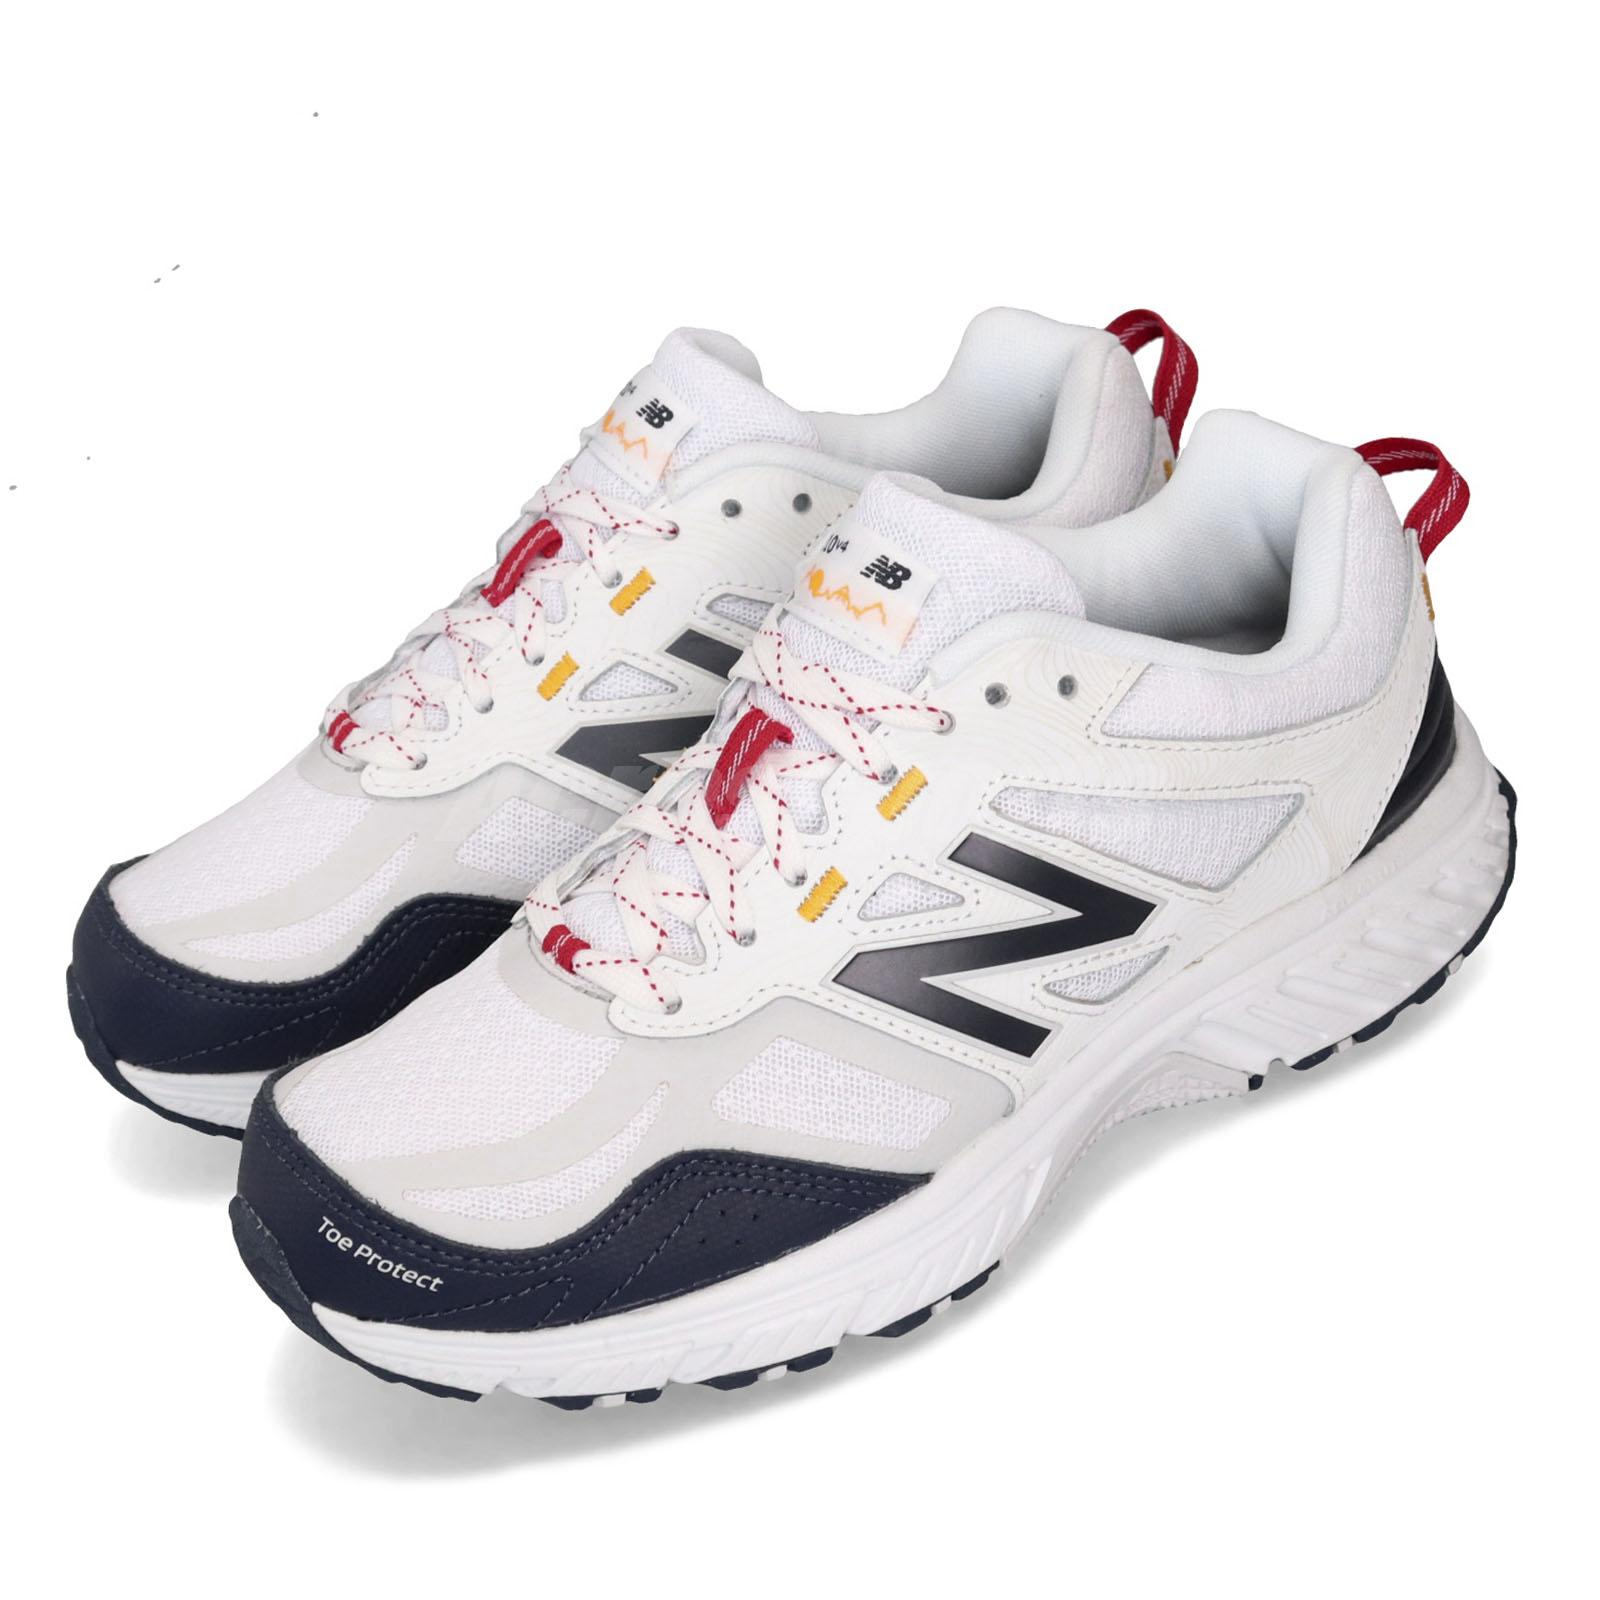 pas mal e6198 0c704 Details about New Balance MT510WB4 2E Wide White Navy Mens Trail Running  Shoes All Terrain 510